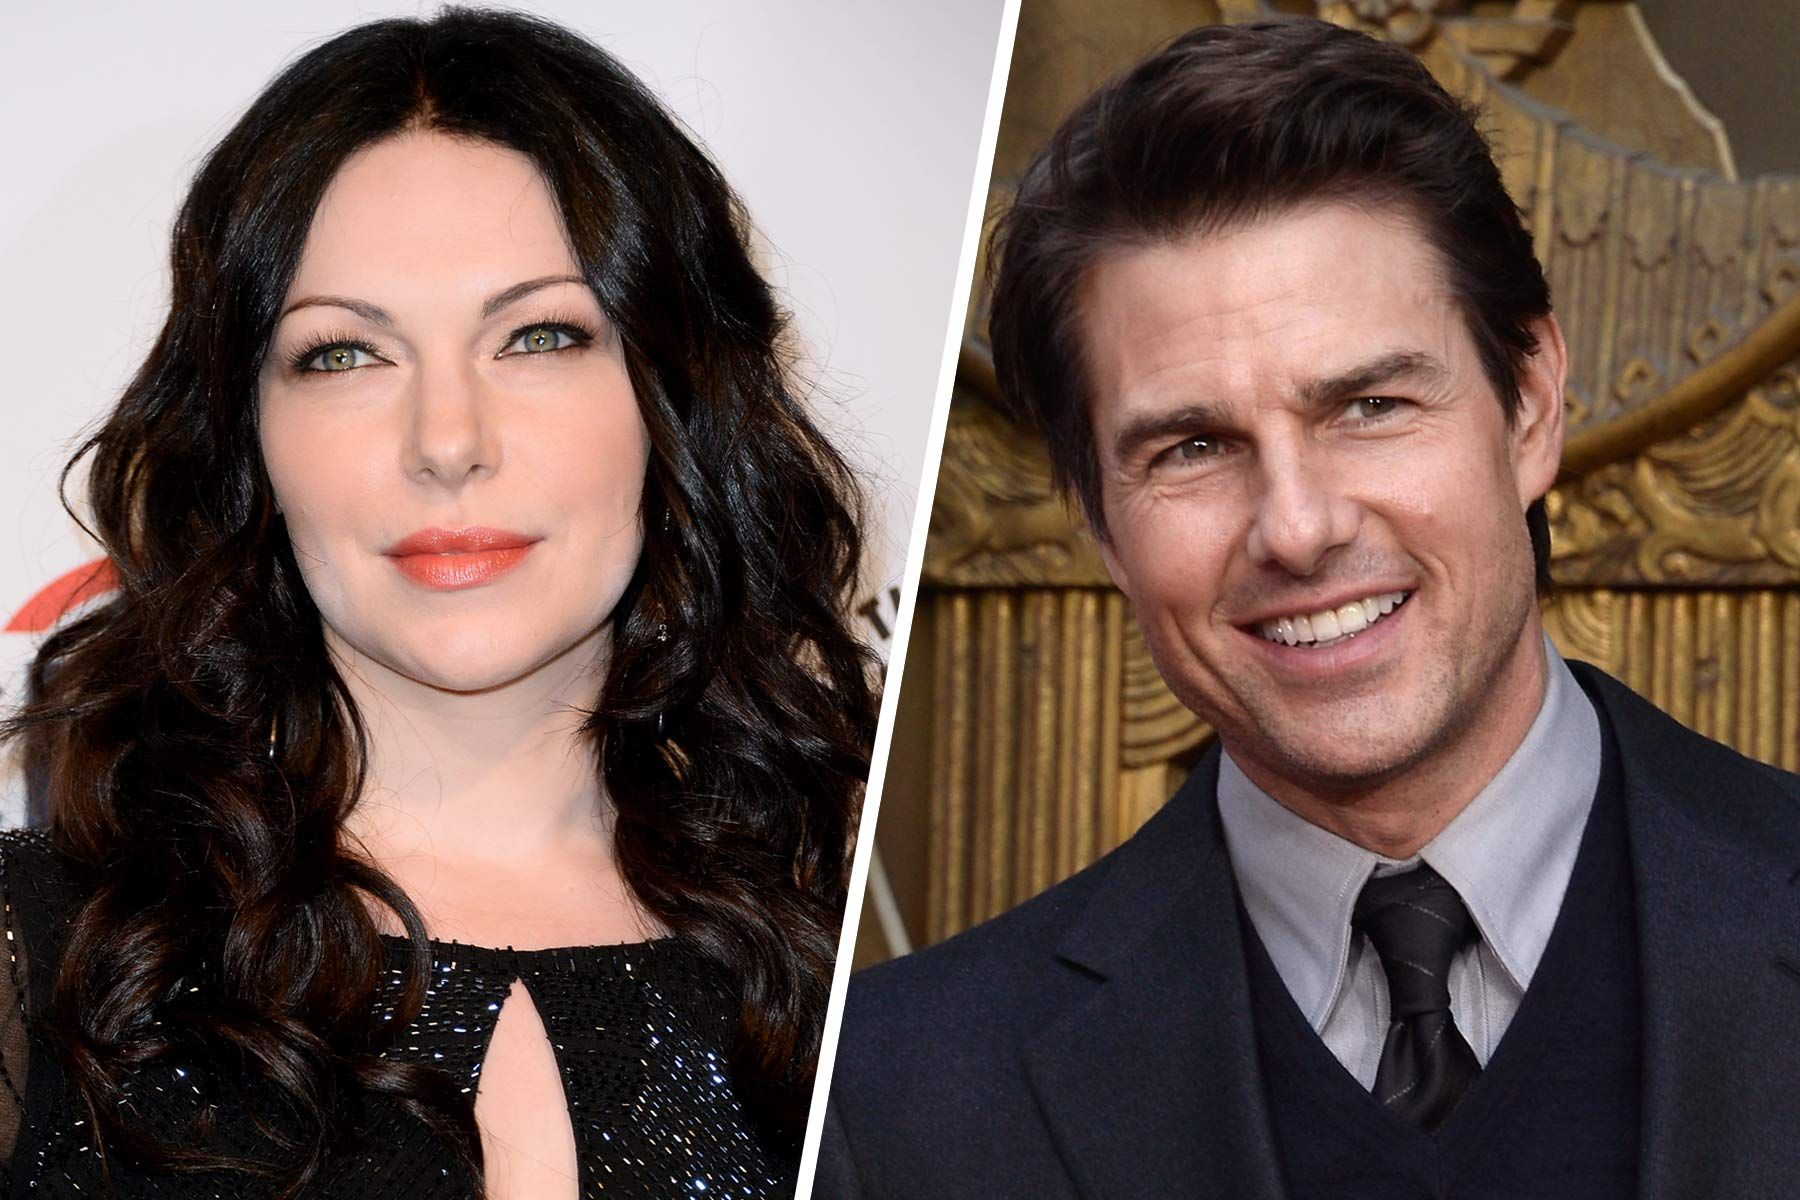 who is tom cruise dating now 2014